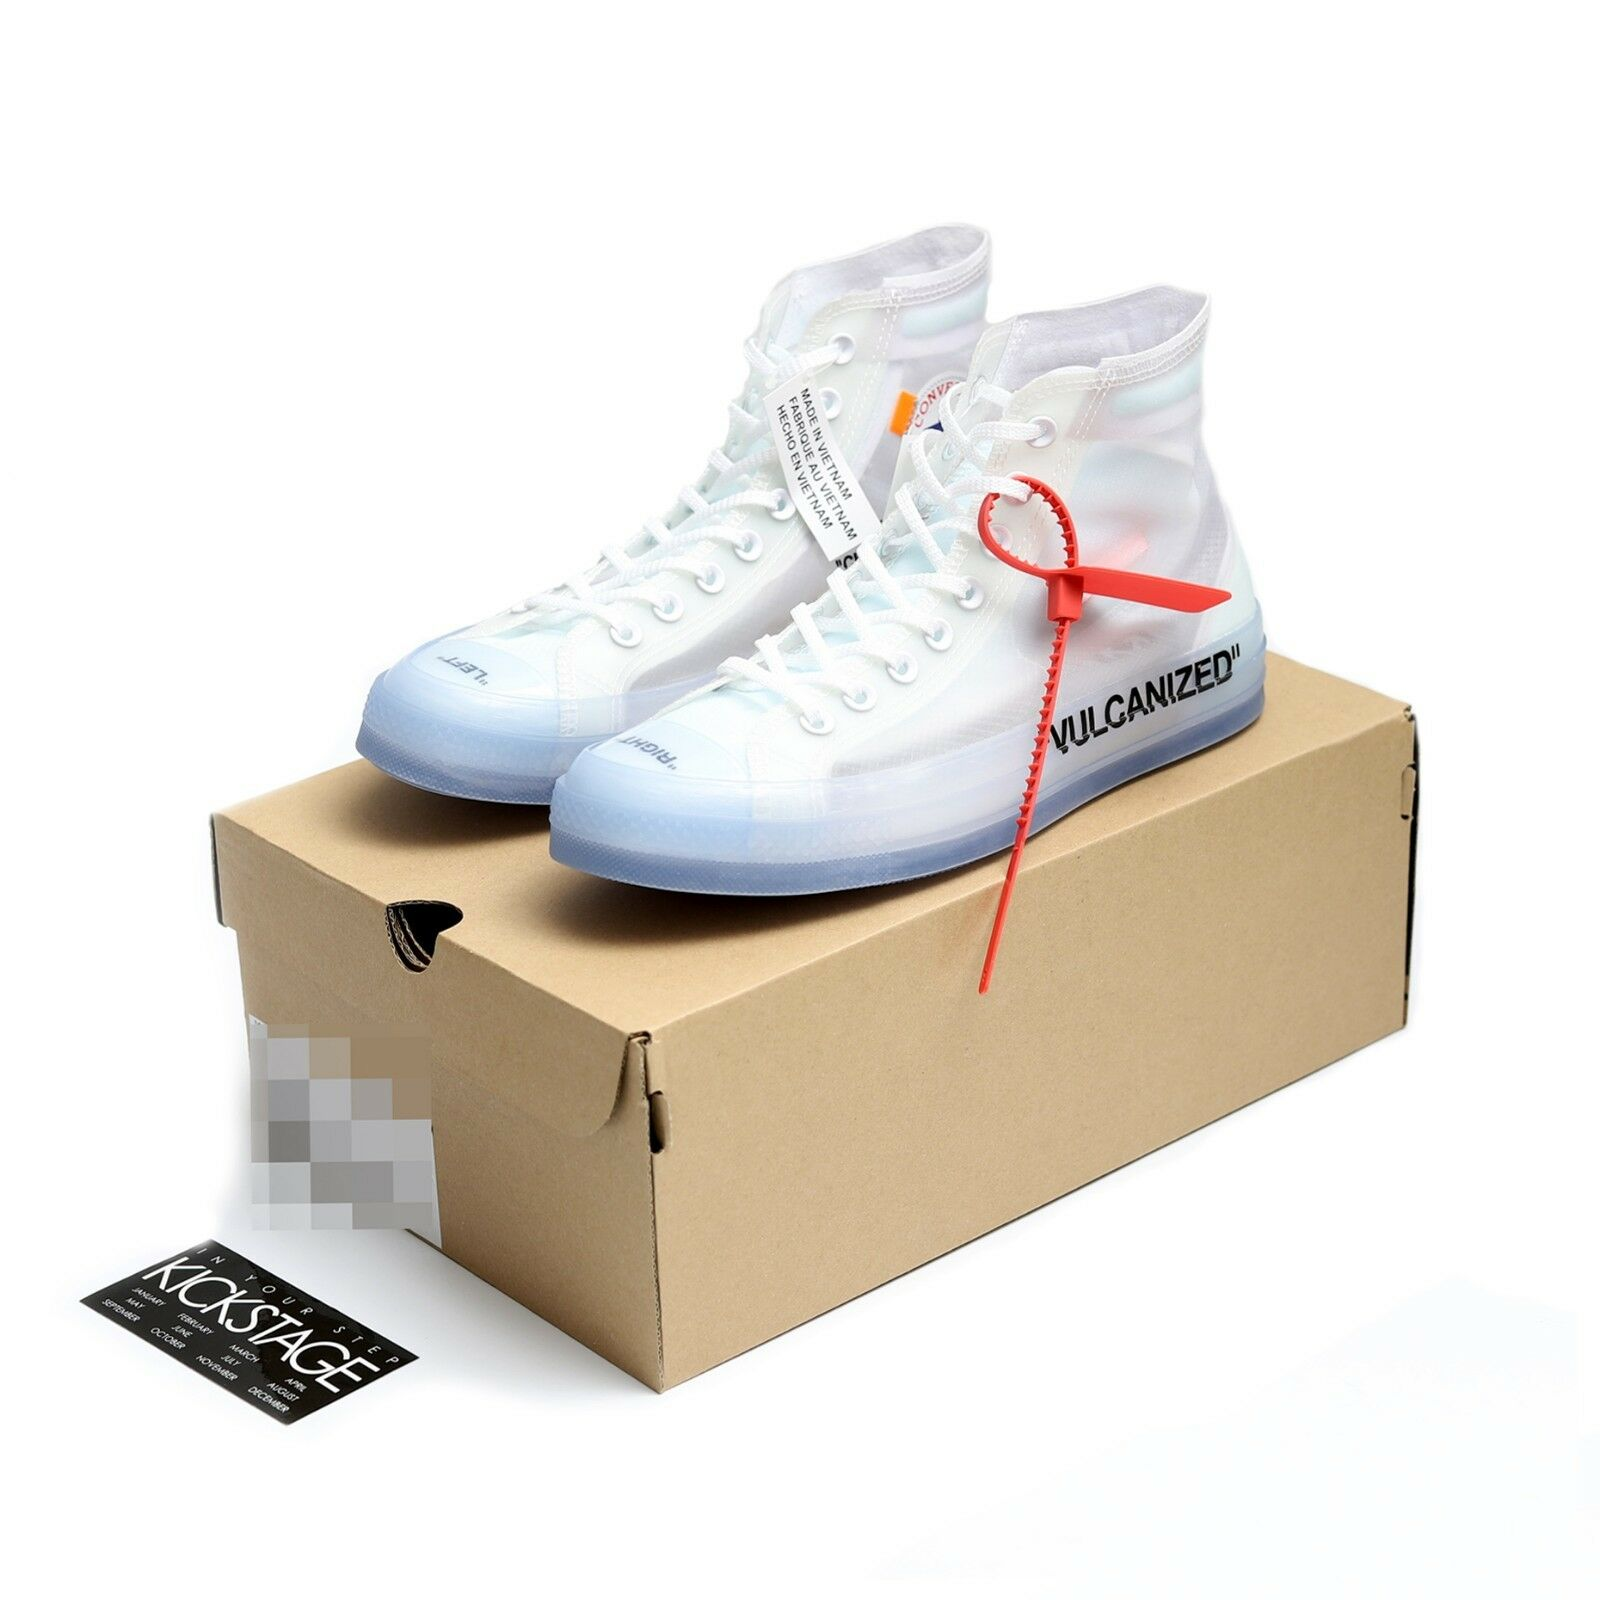 cb819b87f47d OFF-WHITE x Converse Chuck Taylor All Star 70 Hi THE TEN 10 Virgil Abloh  162204C